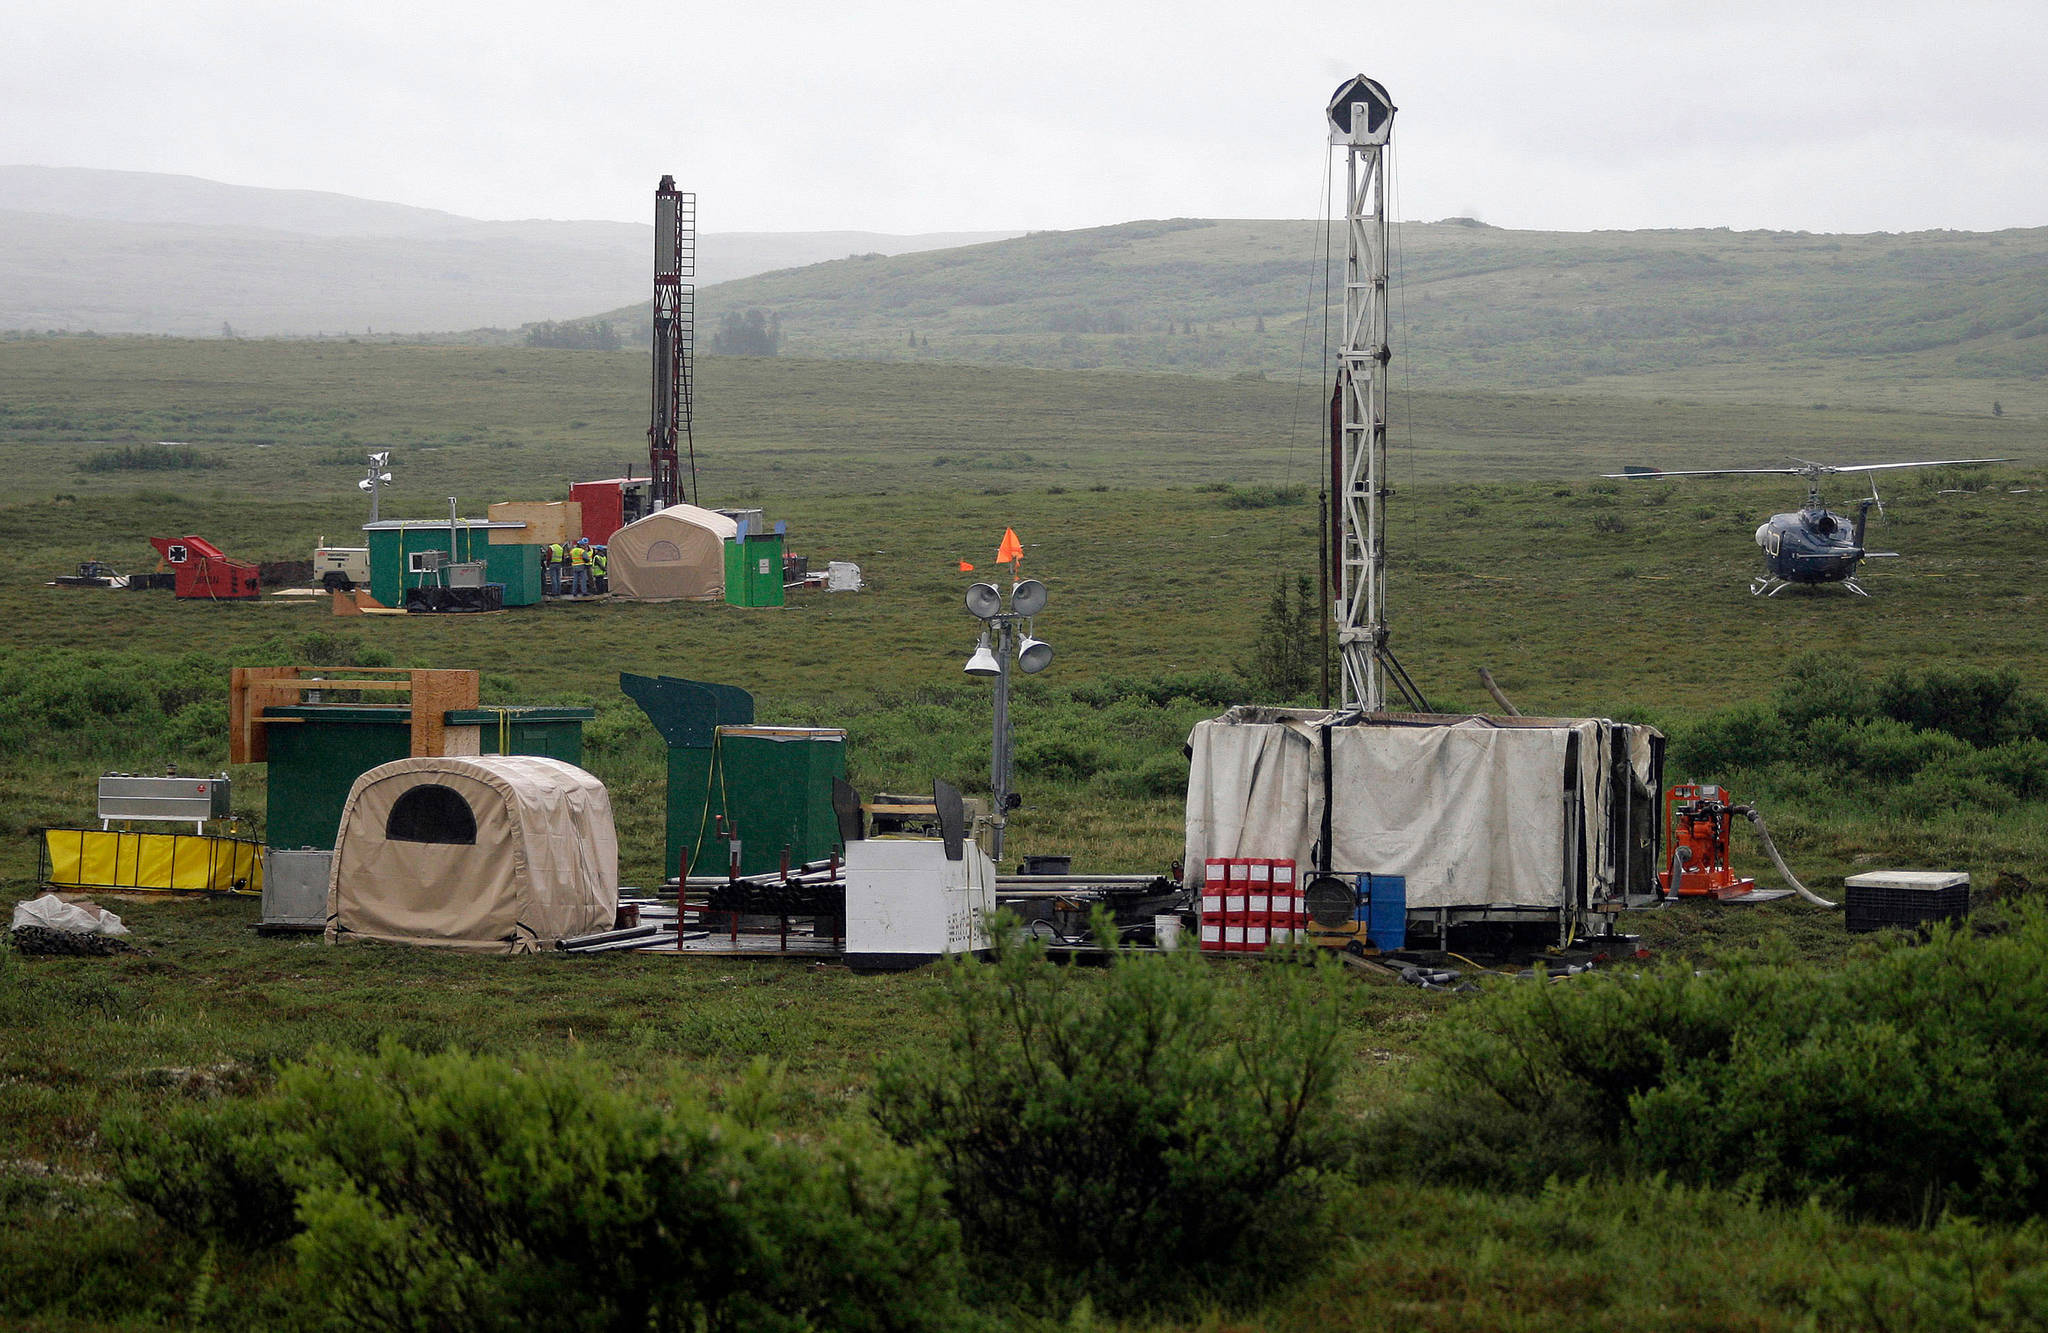 In this July 13, 2007, file photo, workers with the Pebble Mine project test drill in the Bristol Bay region of Alaska, near the village of Iliamma. The Pebble Limited Partnership, which wants to build a copper and gold mine near the headwaters of a major U.S. salmon fishery in southwest Alaska, says it plans to offer residents in the region a dividend. (AP Photo/Al Grillo, File)